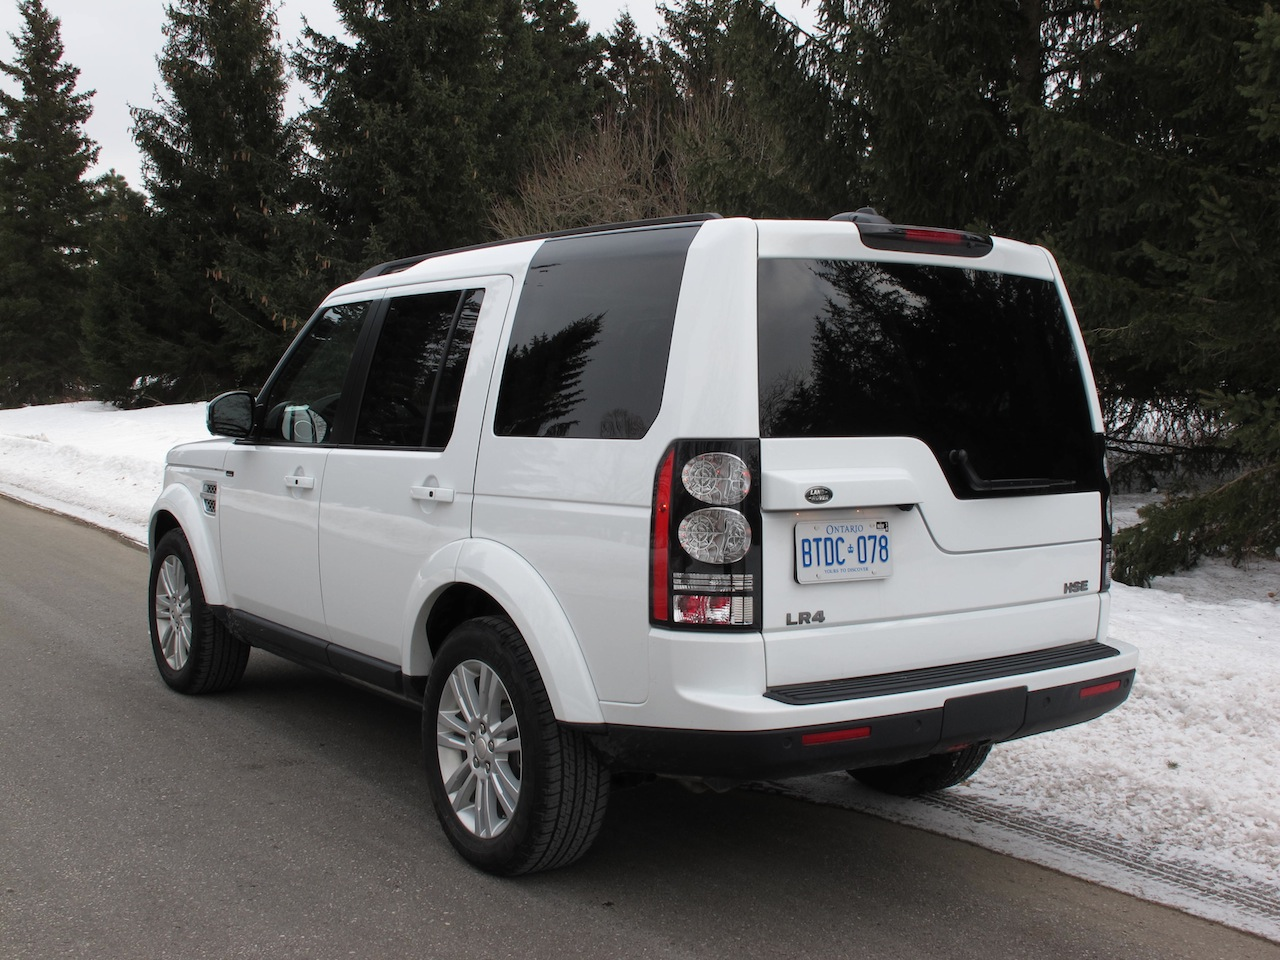 ... 2014 Land Rover LR4 HSE white rear side view ...